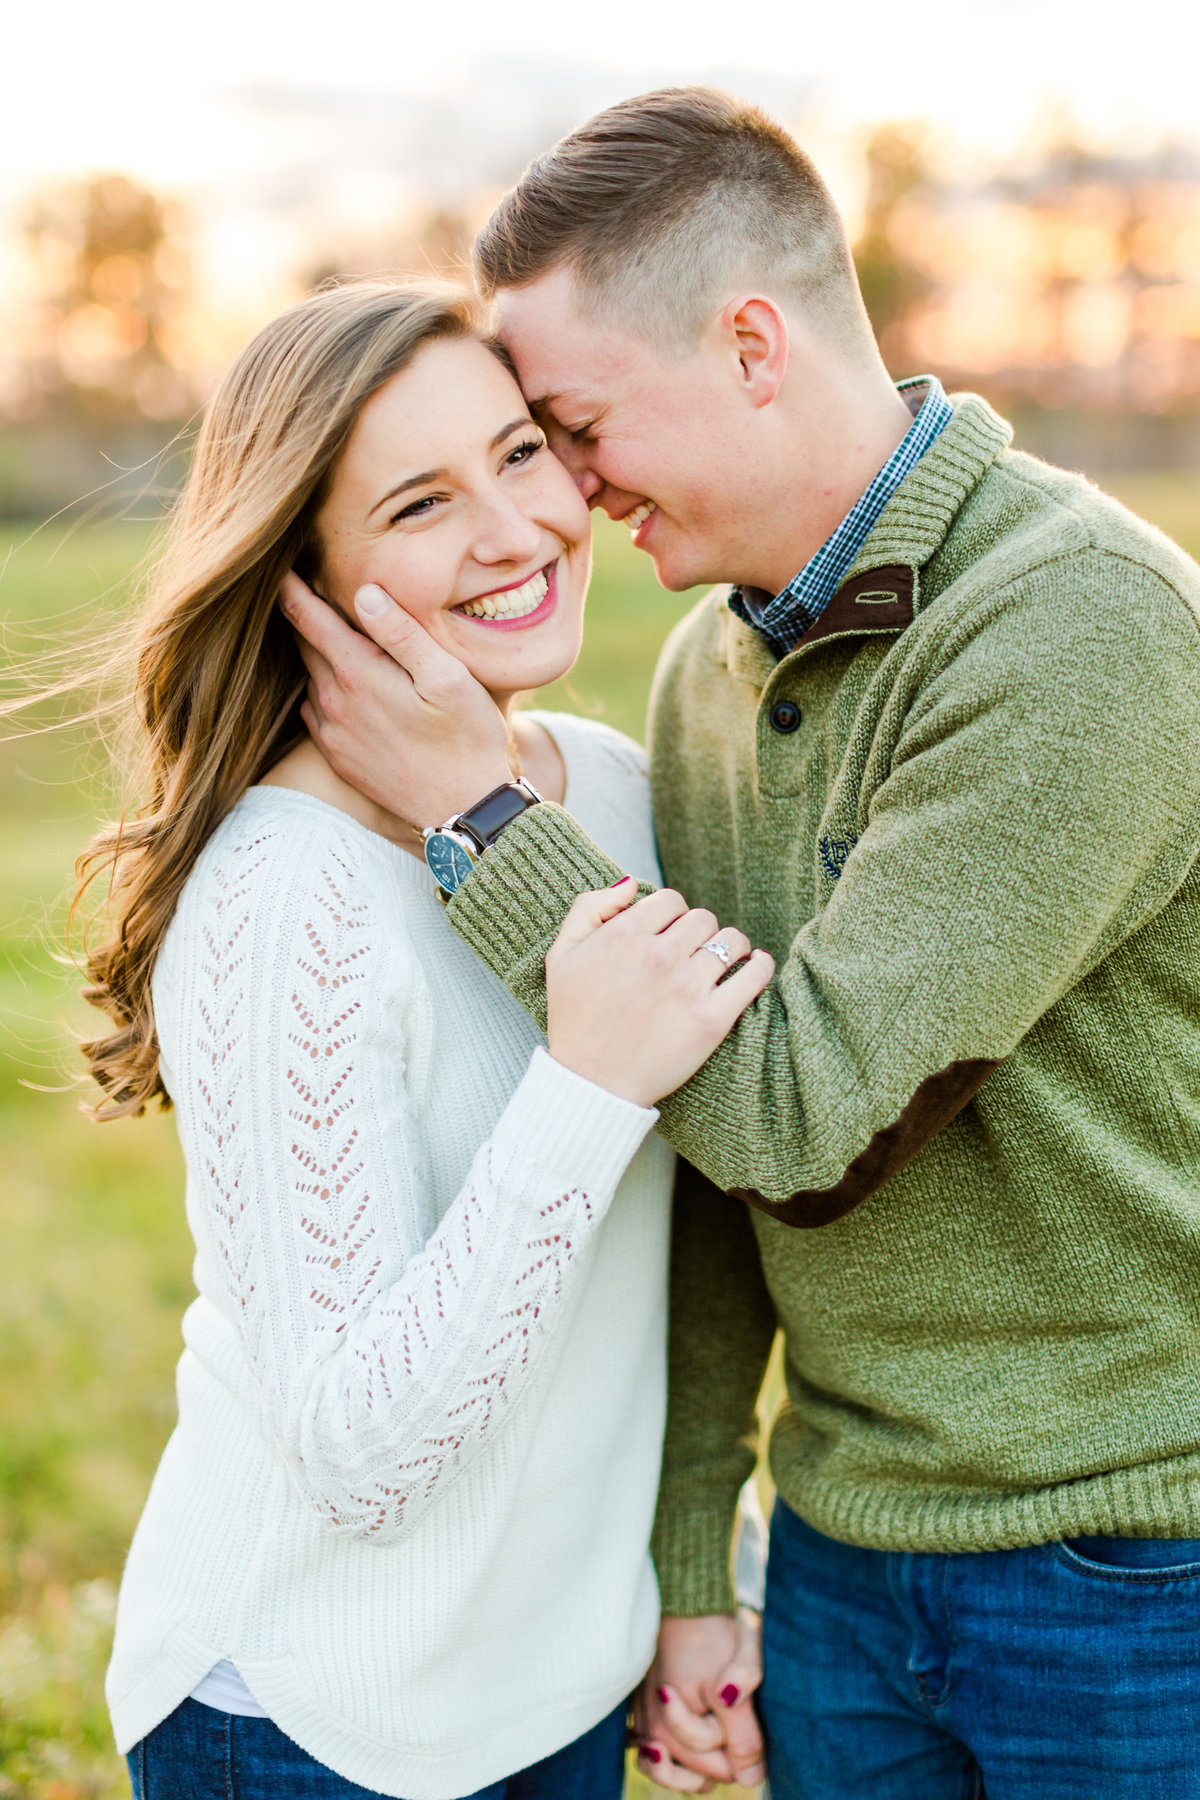 Airport Engagement Session Air Force Engagement Session at Shenandoah Valley Regional Airport in Weyers Cave, Virginia Emily Sacra Photography-70